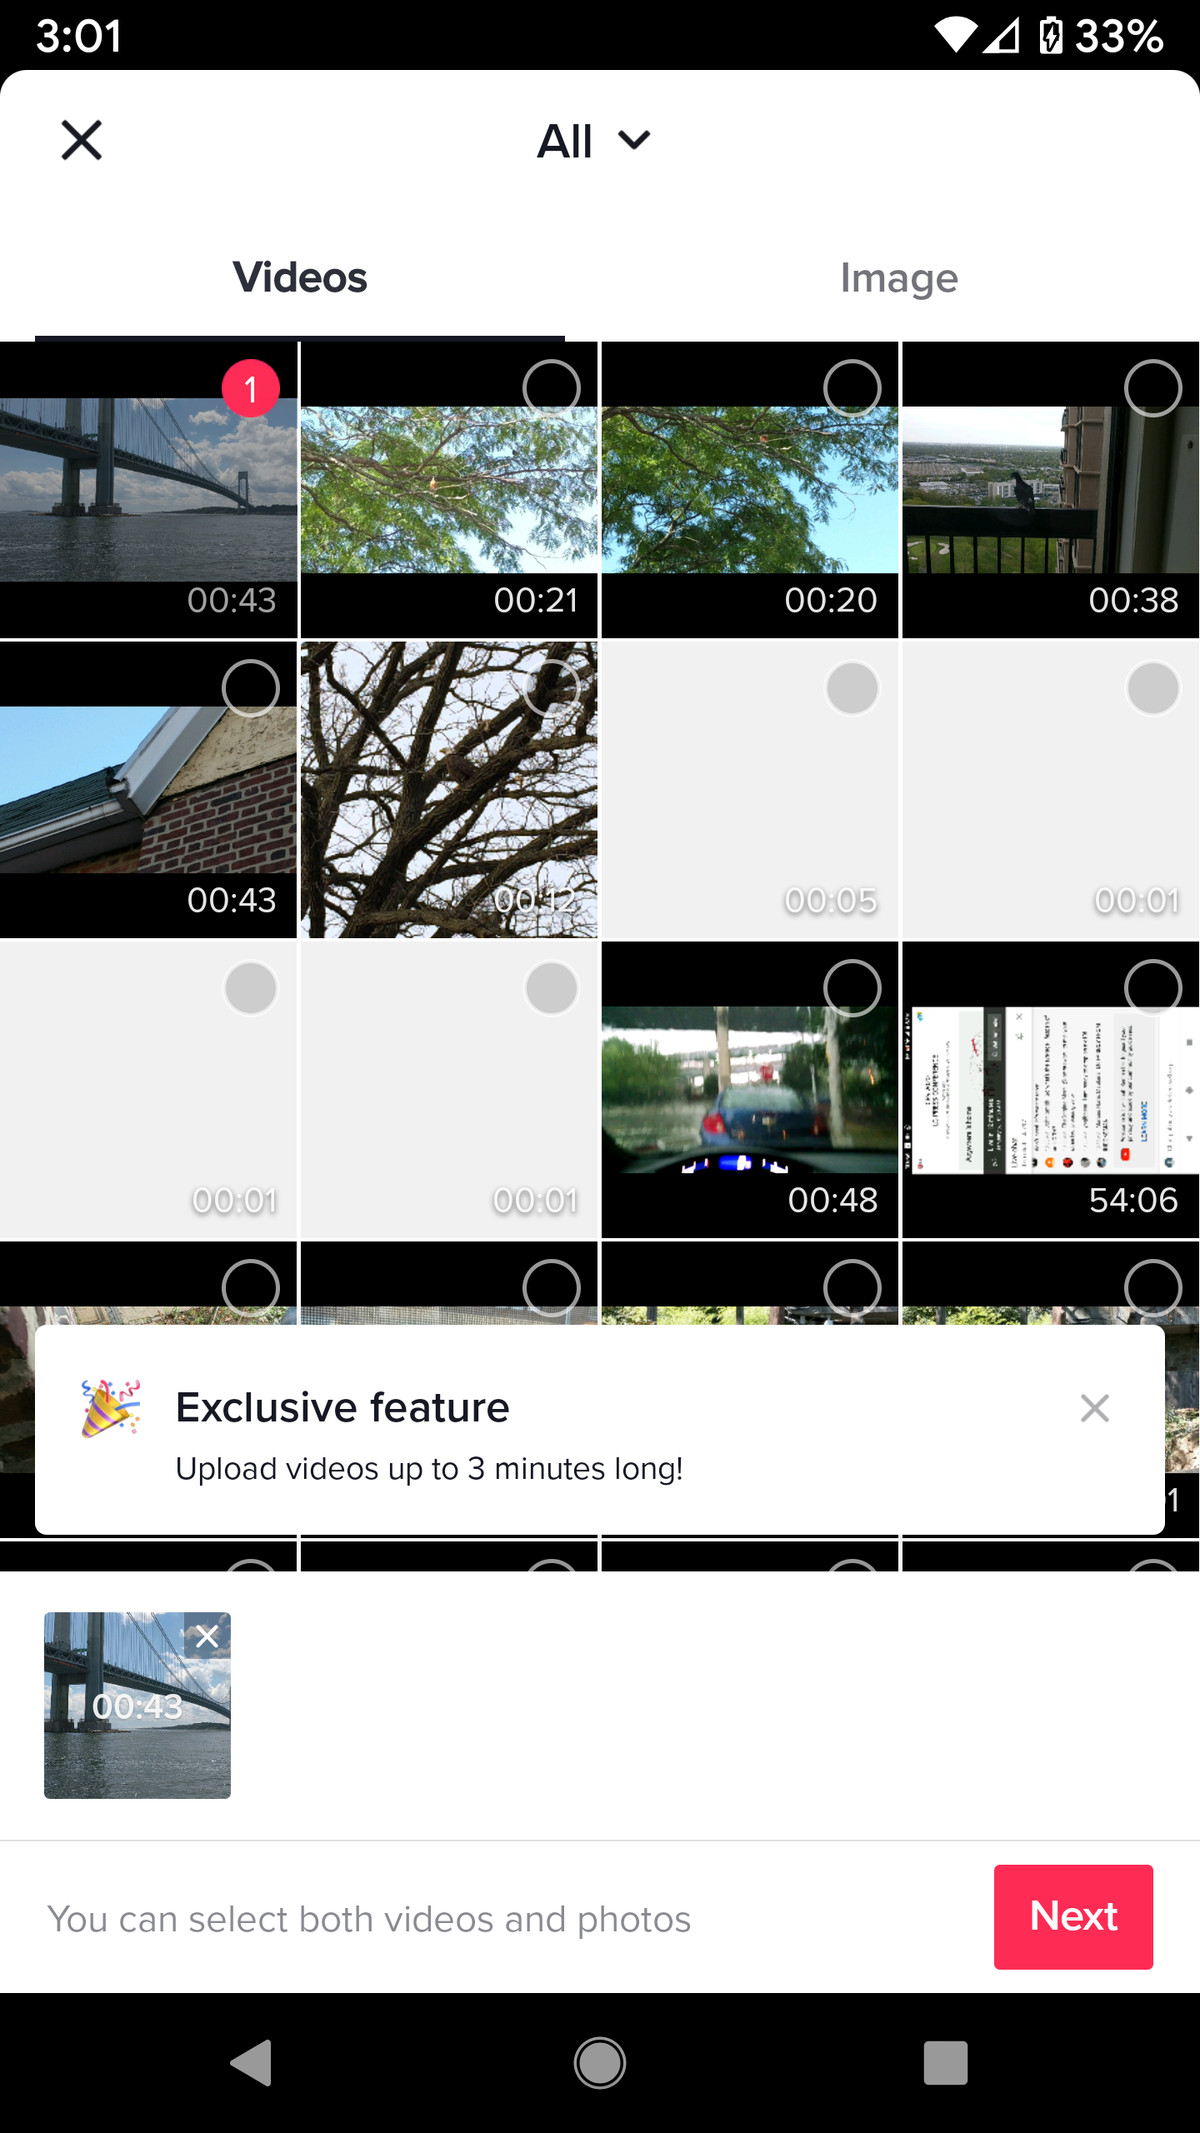 A thumbnail of the video or photo of your choice will appear at the bottom.